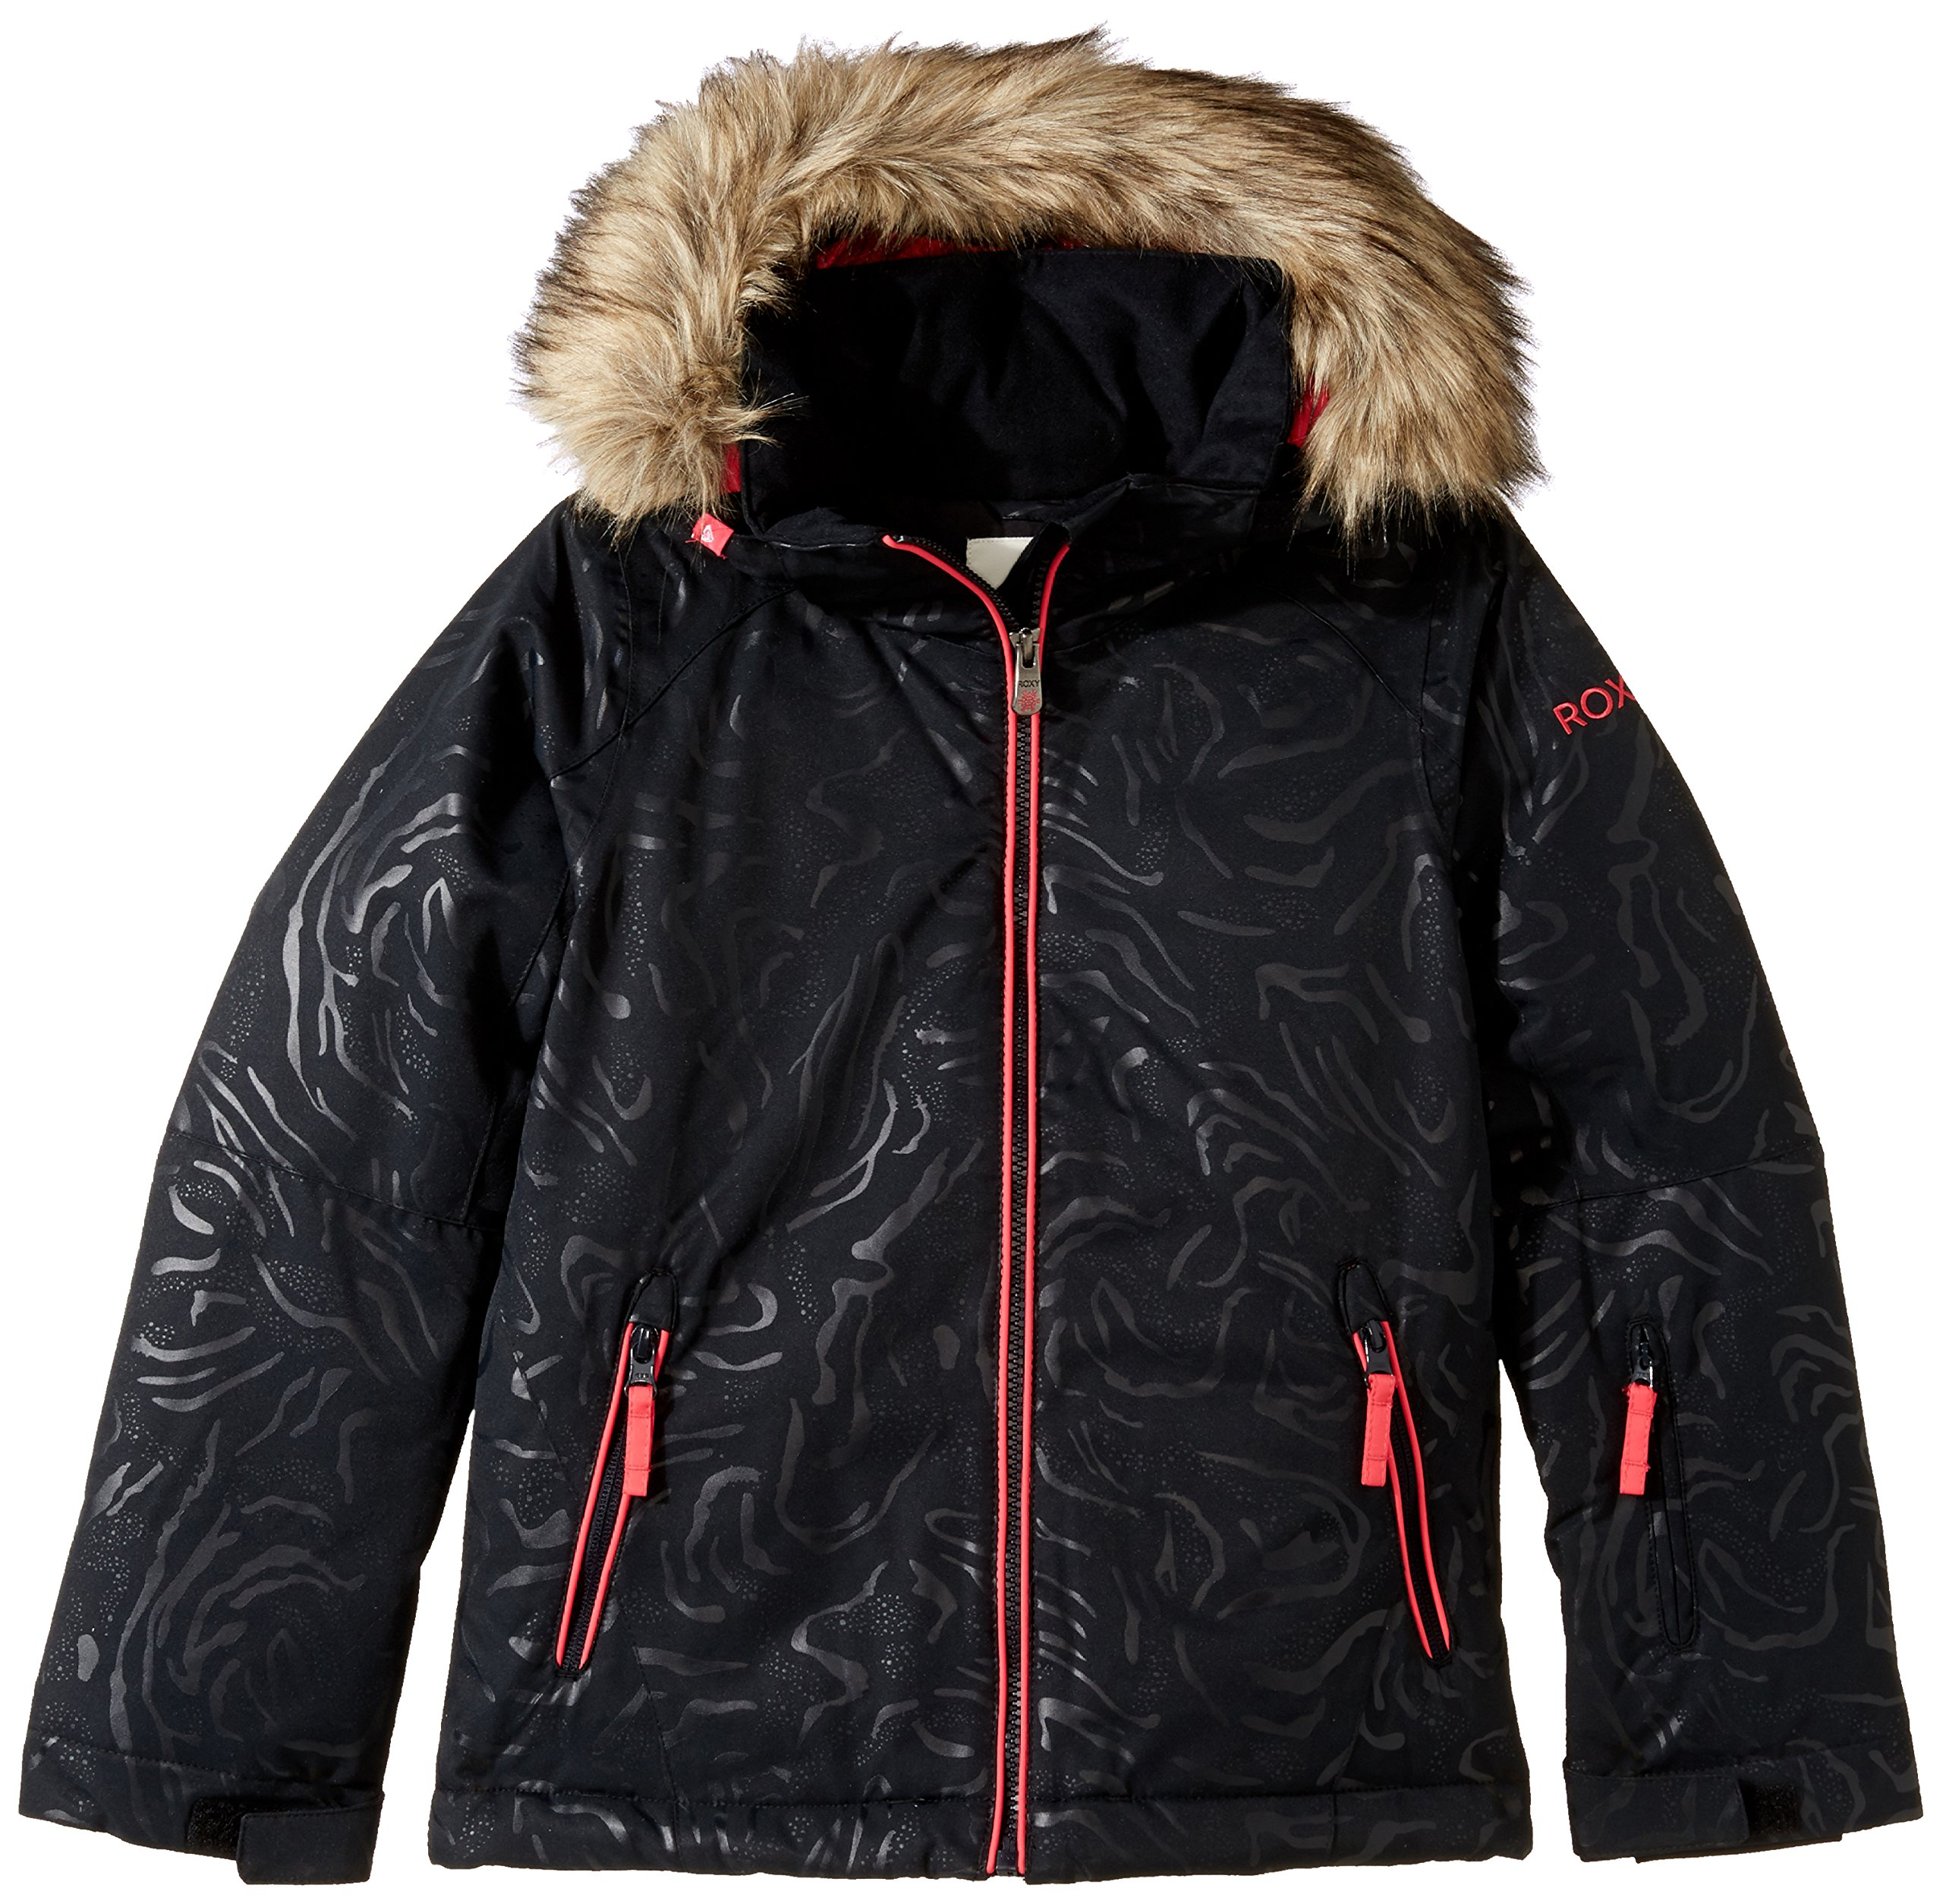 Roxy Big Girls' American Pie Solid Snow Jacket, True Black, 14/XL